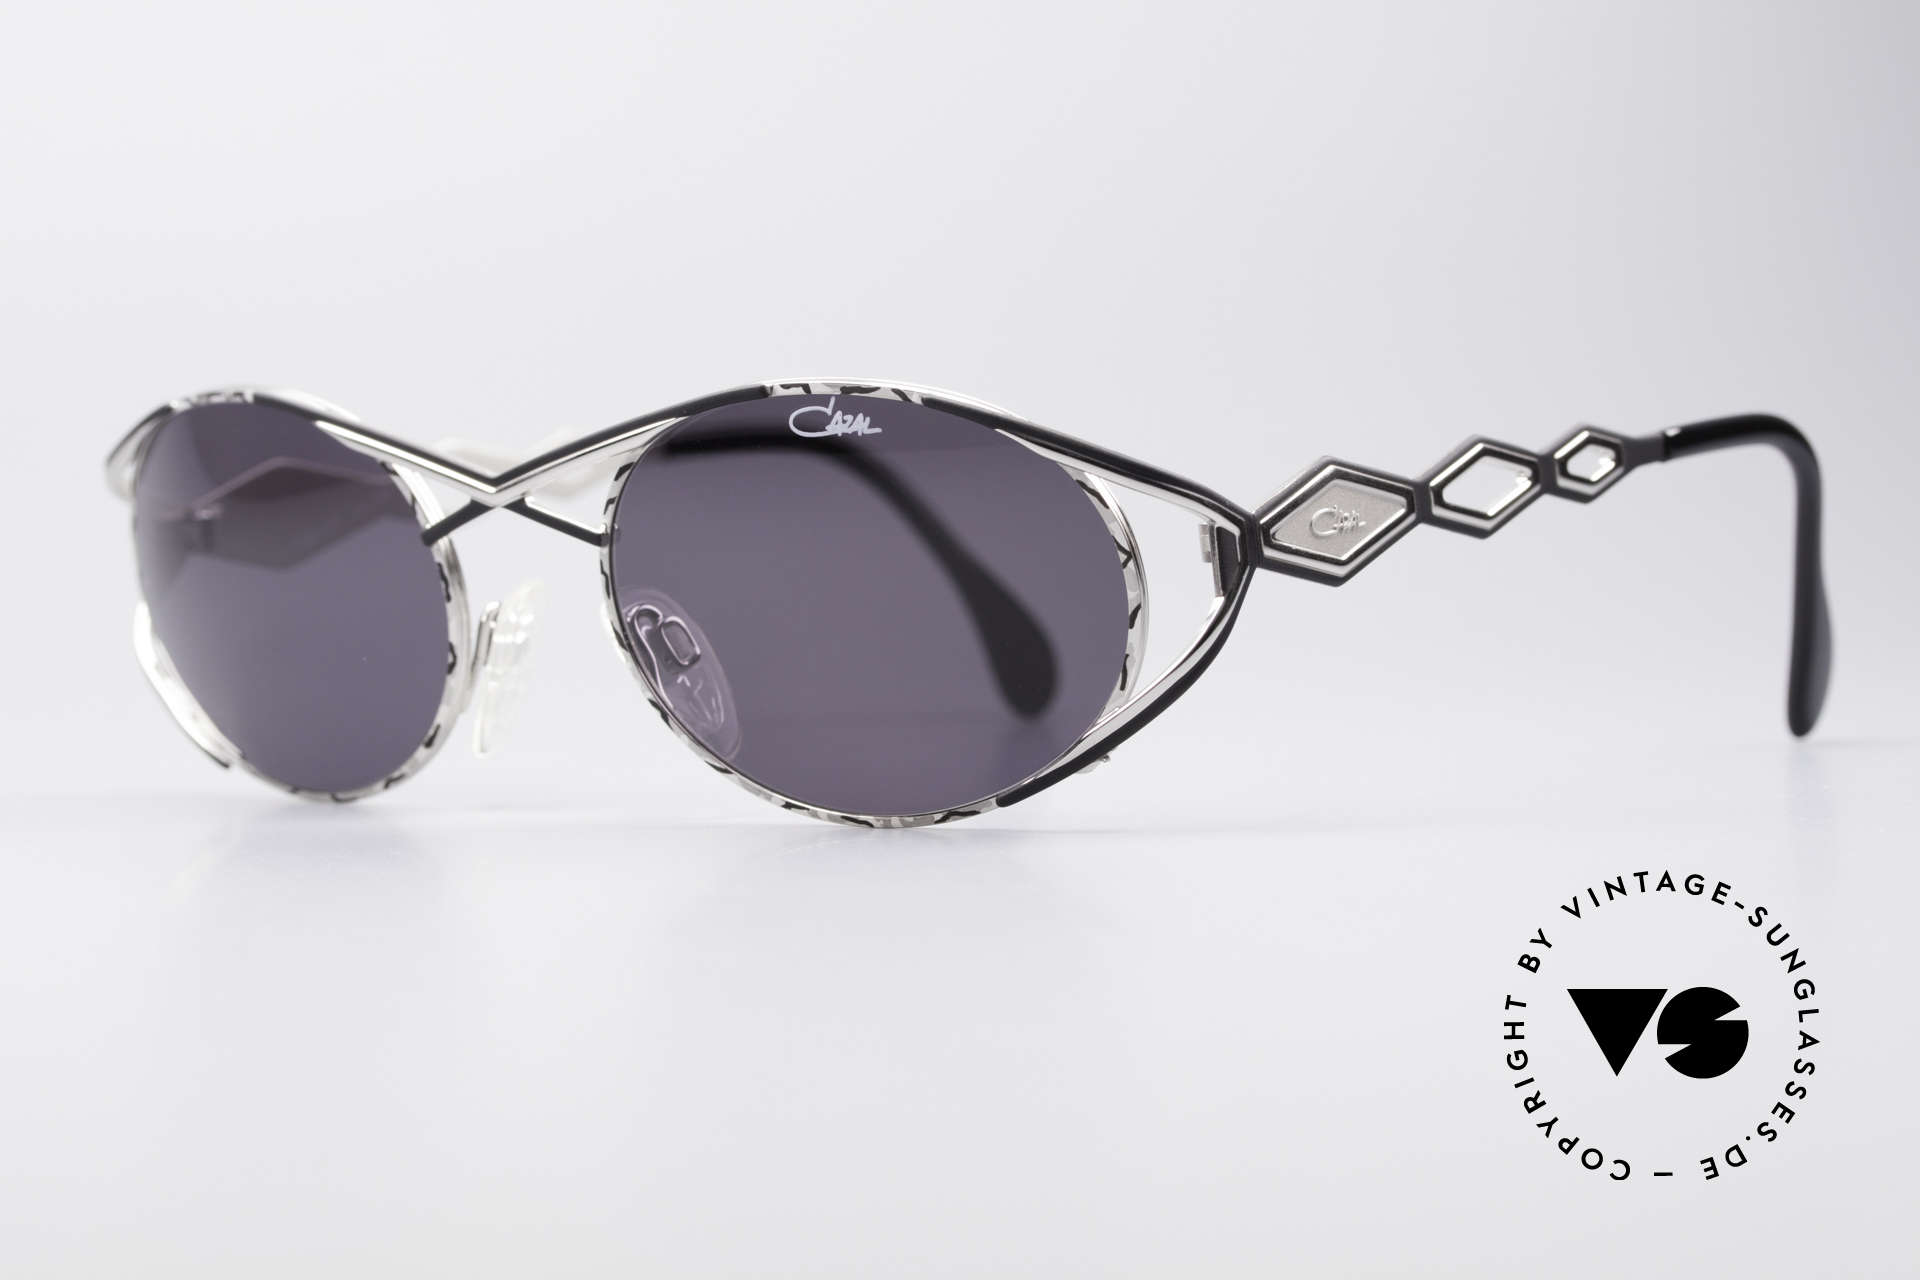 Cazal 977 Vintage 90s Sunglasses Ladies, glamorous design elements; an elegance full of verve, Made for Women